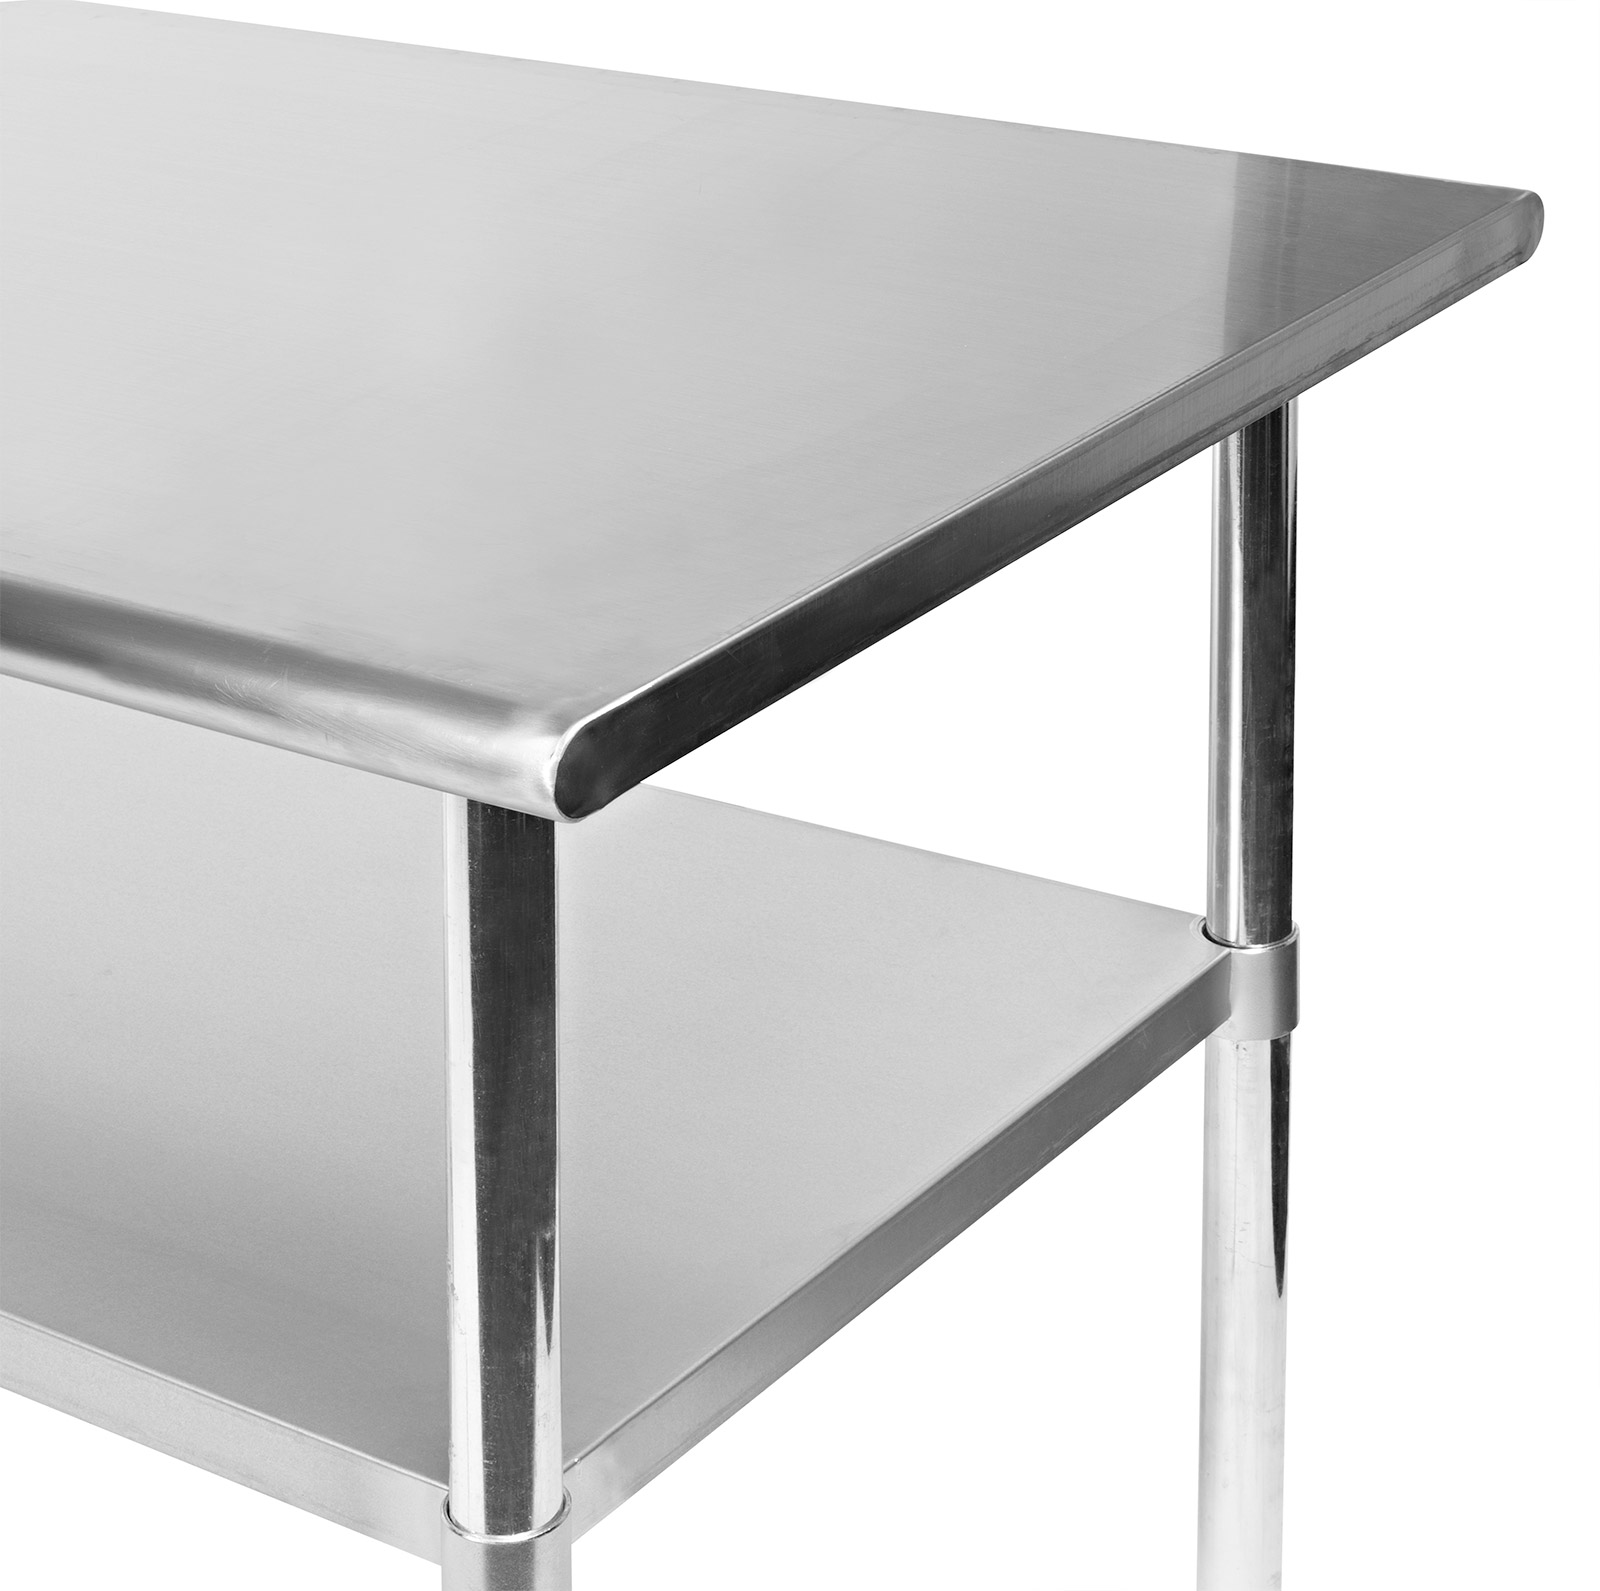 gridmann nsf stainless steel commercial kitchen prep work table multiple sizes available 30 36 48 72 walmartcom. beautiful ideas. Home Design Ideas